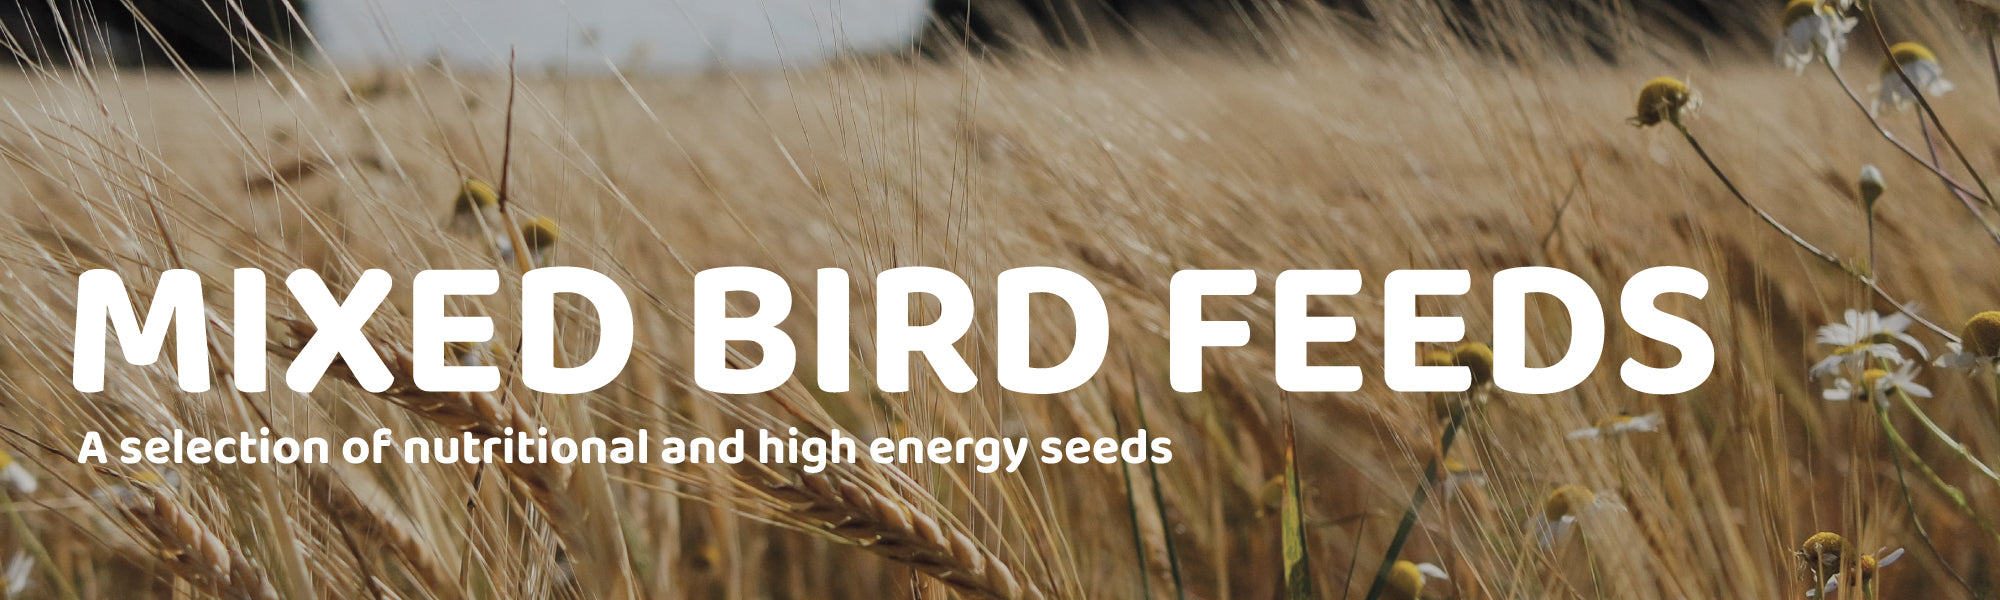 Mixed Bird Feeds - A selection of nutritional and high energy seed